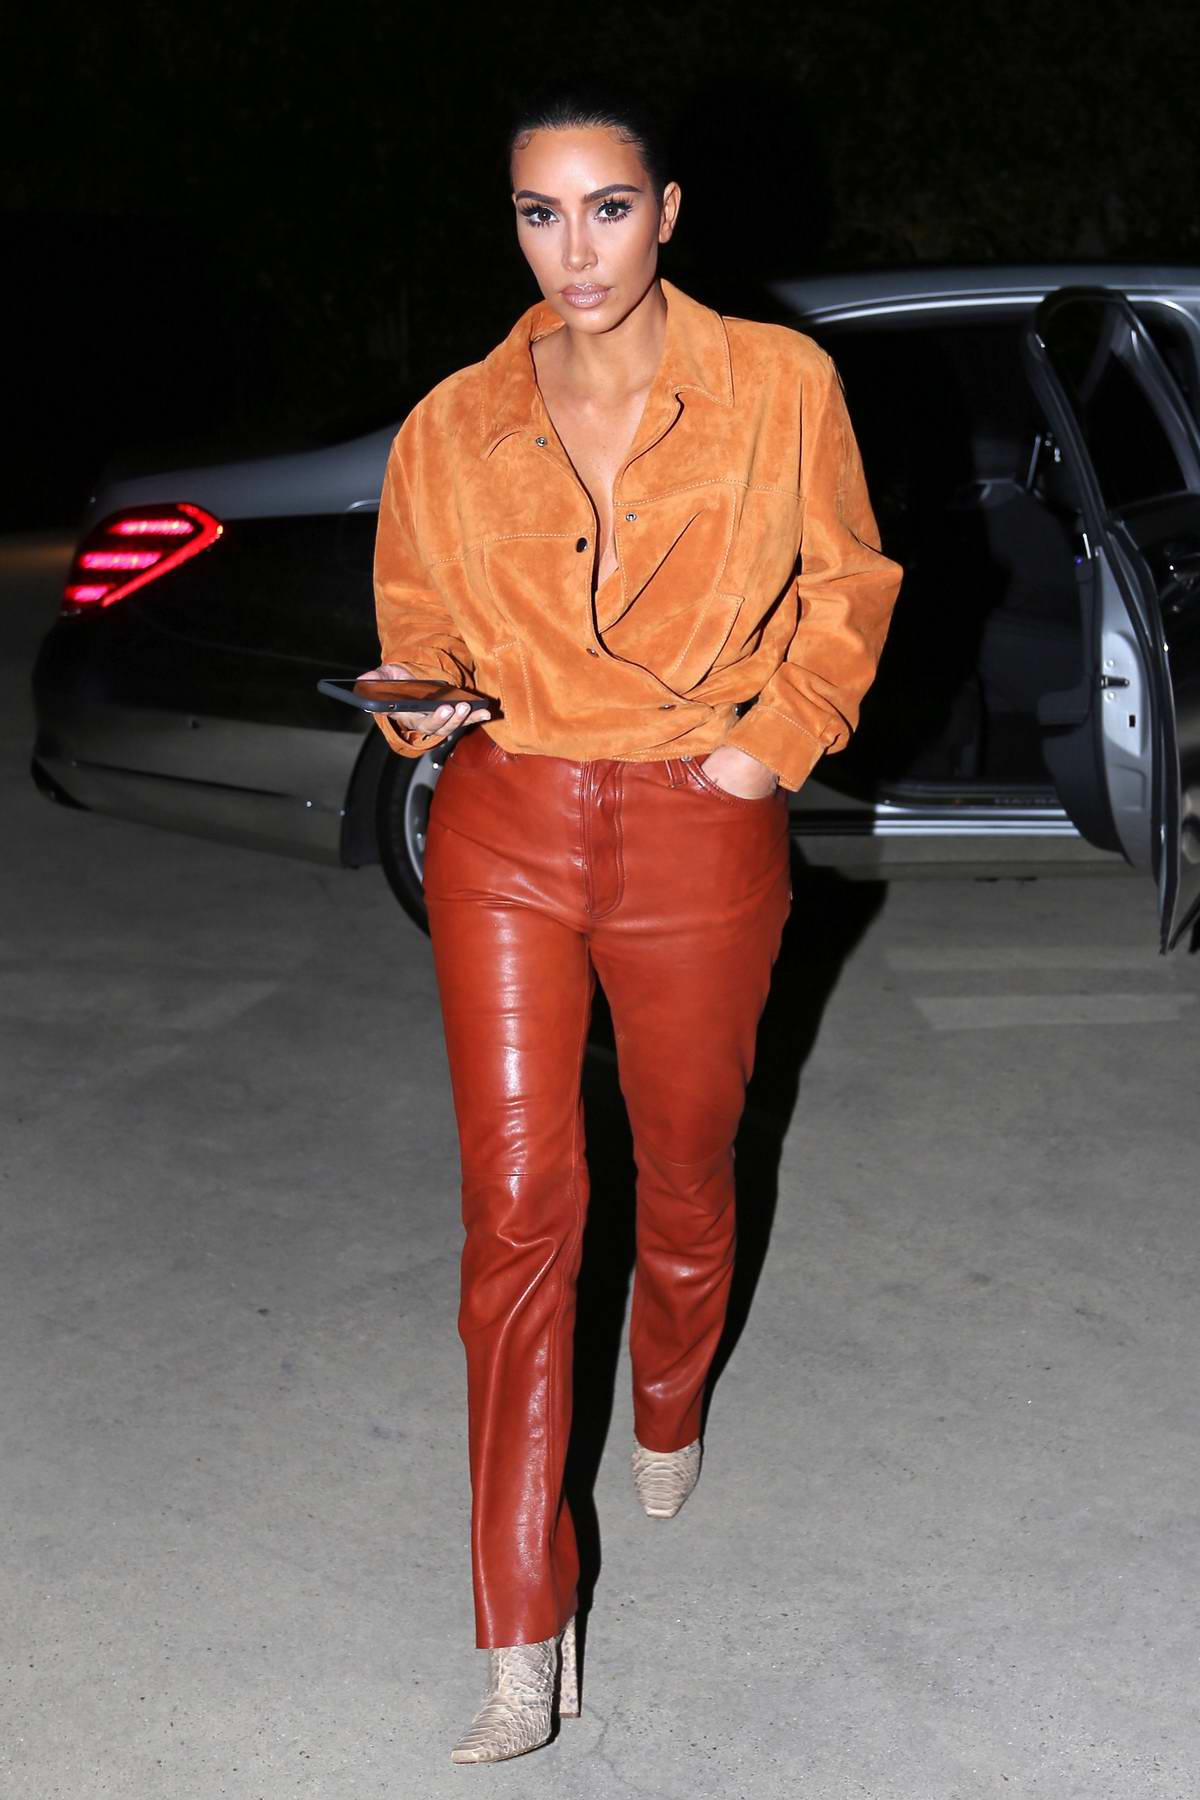 Kim Kardashian looks sleek in leather while visiting a friend in Malibu, California